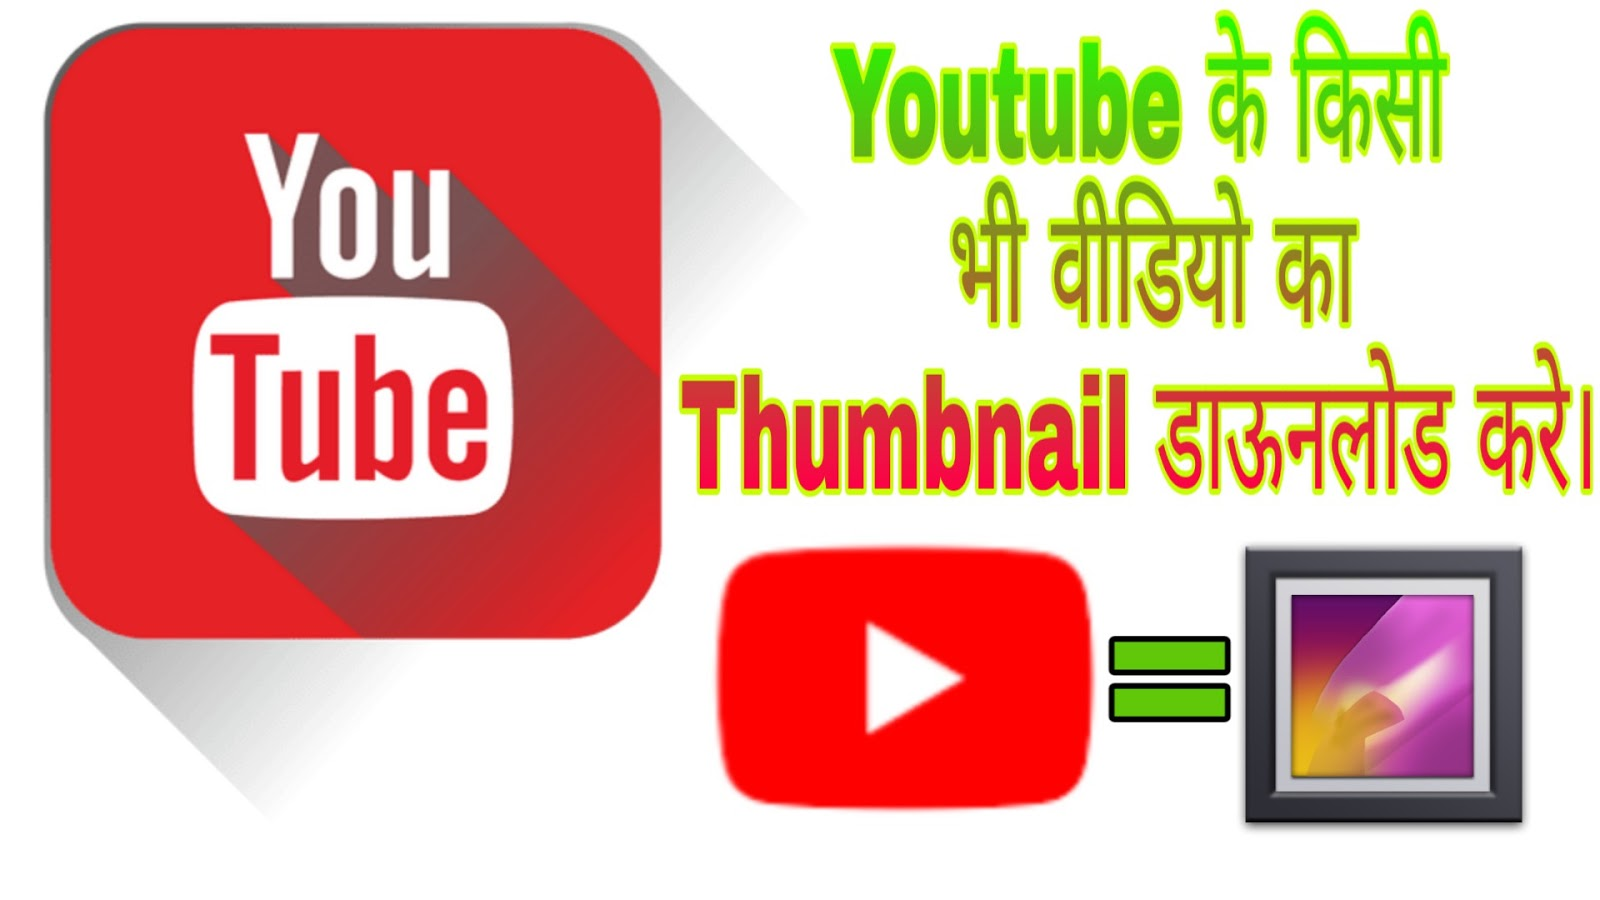 Youtube video ki Thumbnails Kaise download kare ? - Trickz Sub